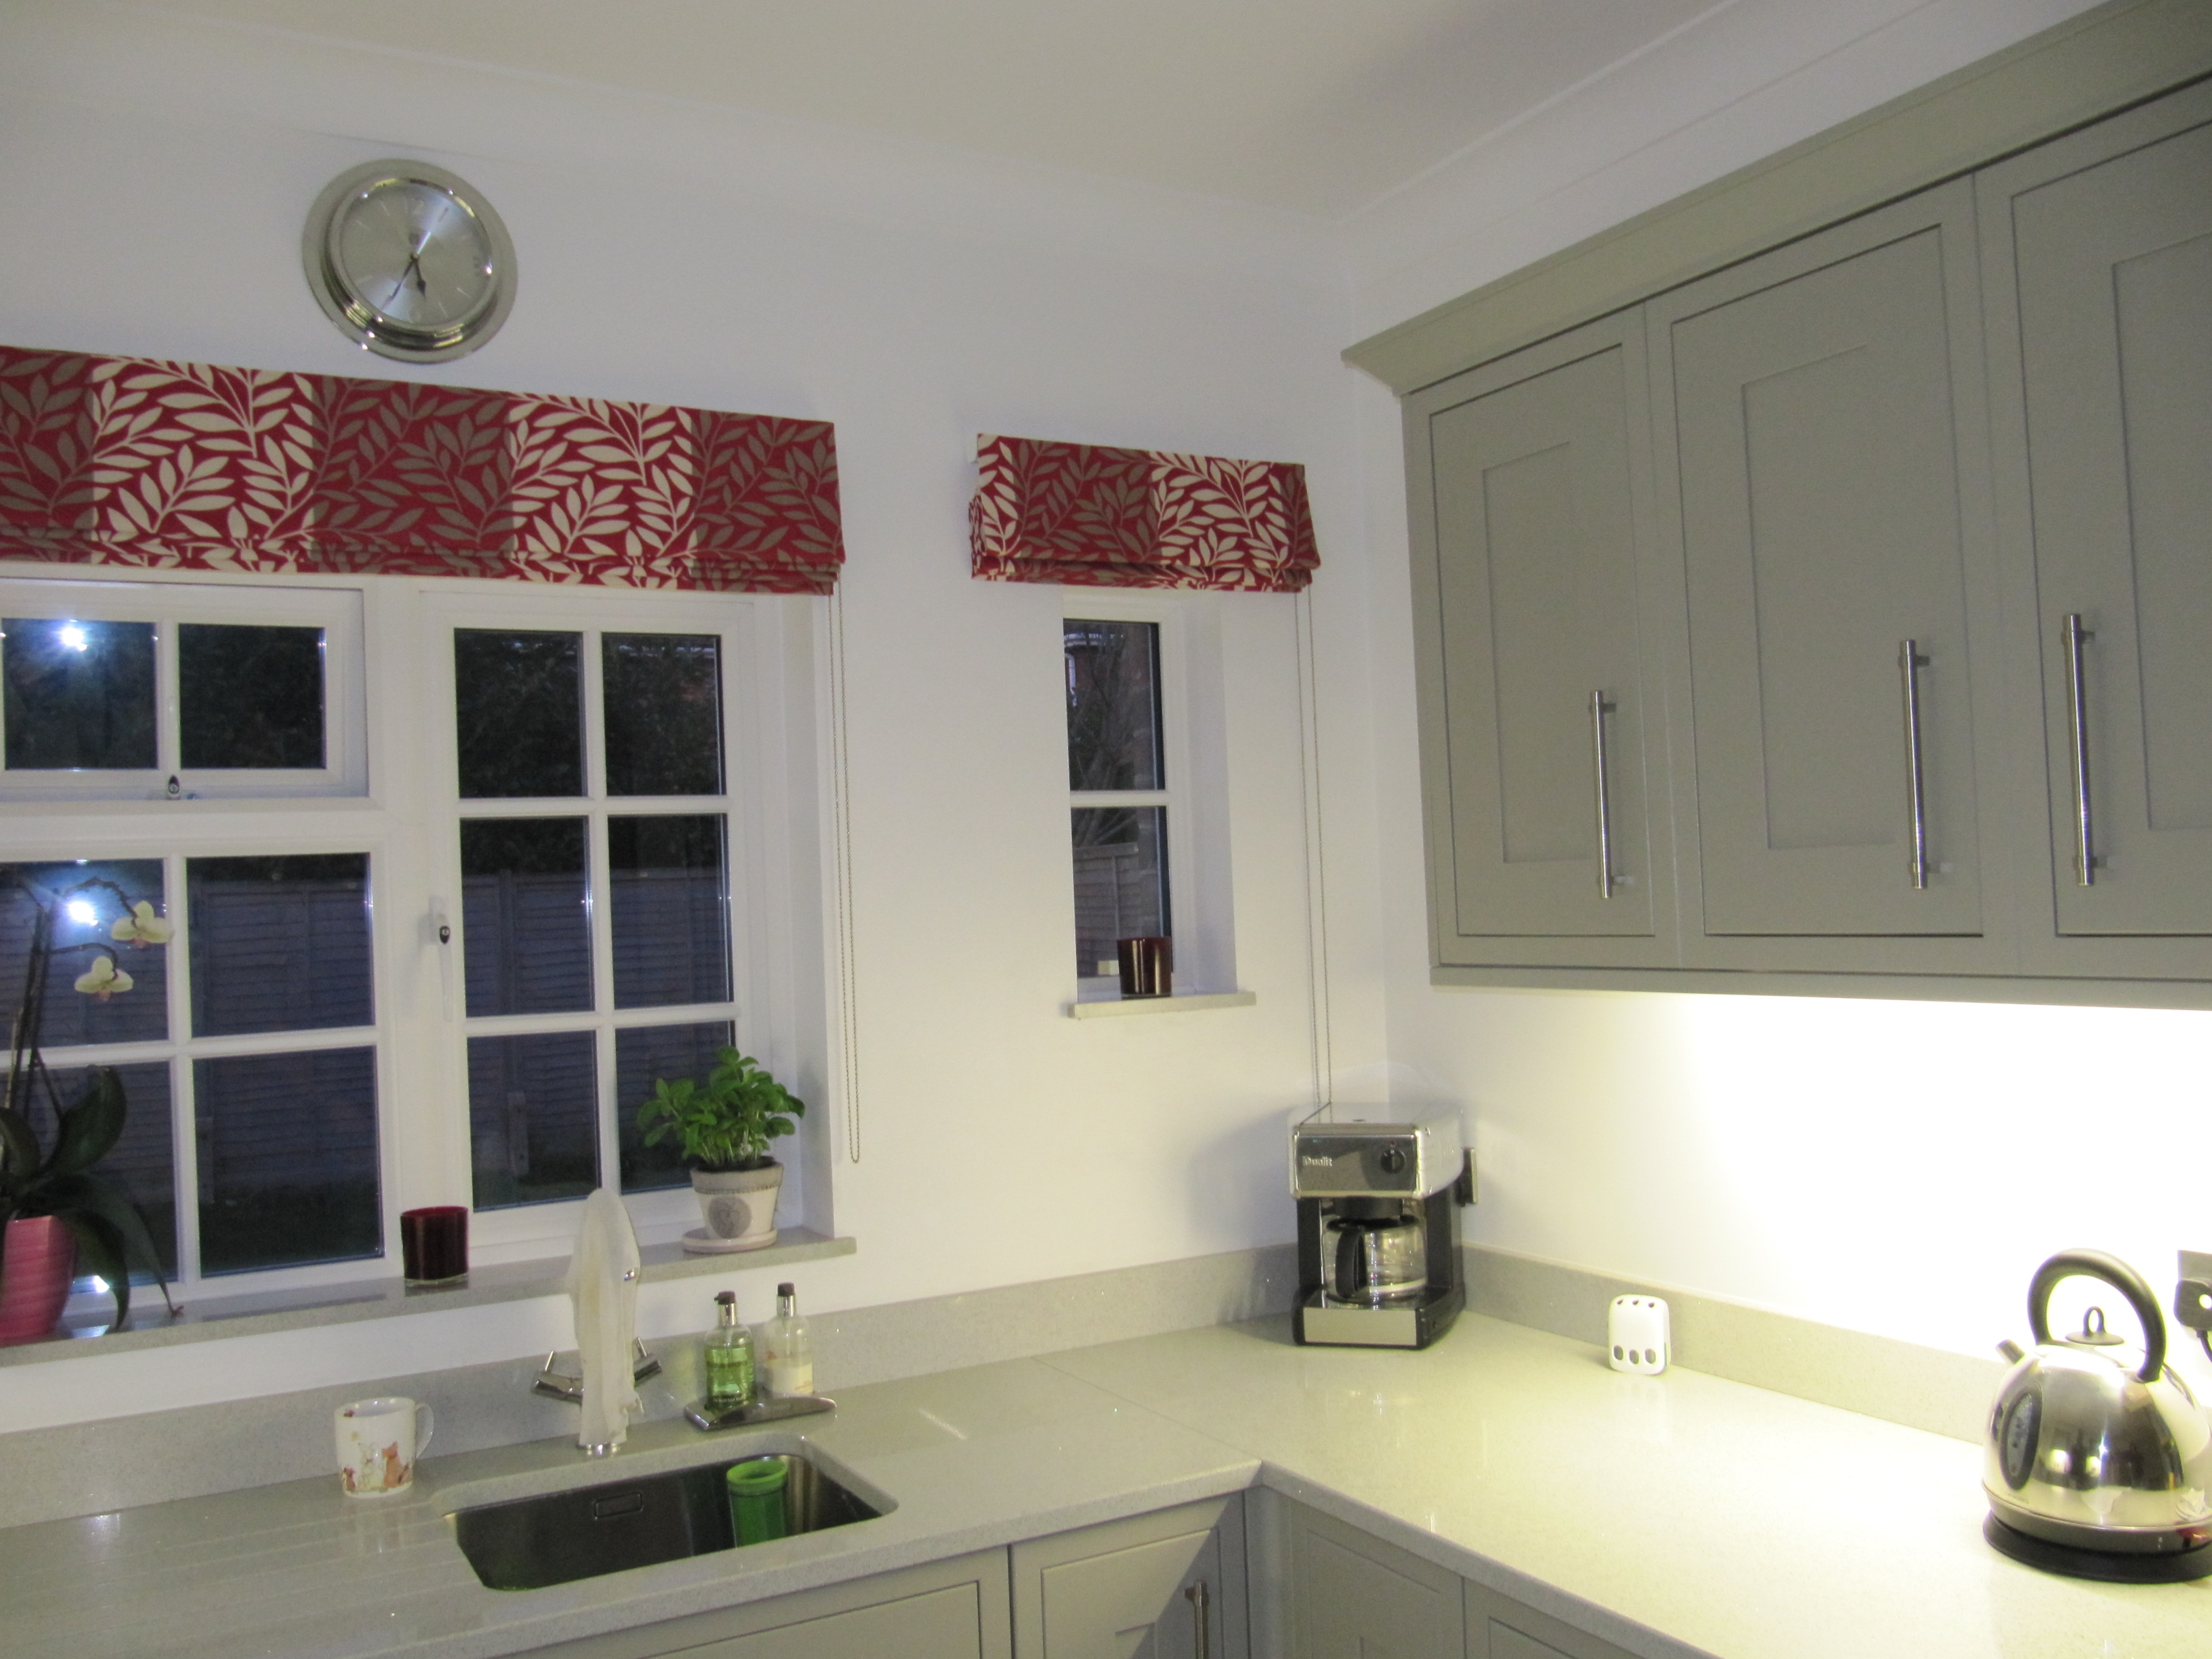 Captivating 15 Collection Of Red Roman Blinds Kitchen Curtain Ideas